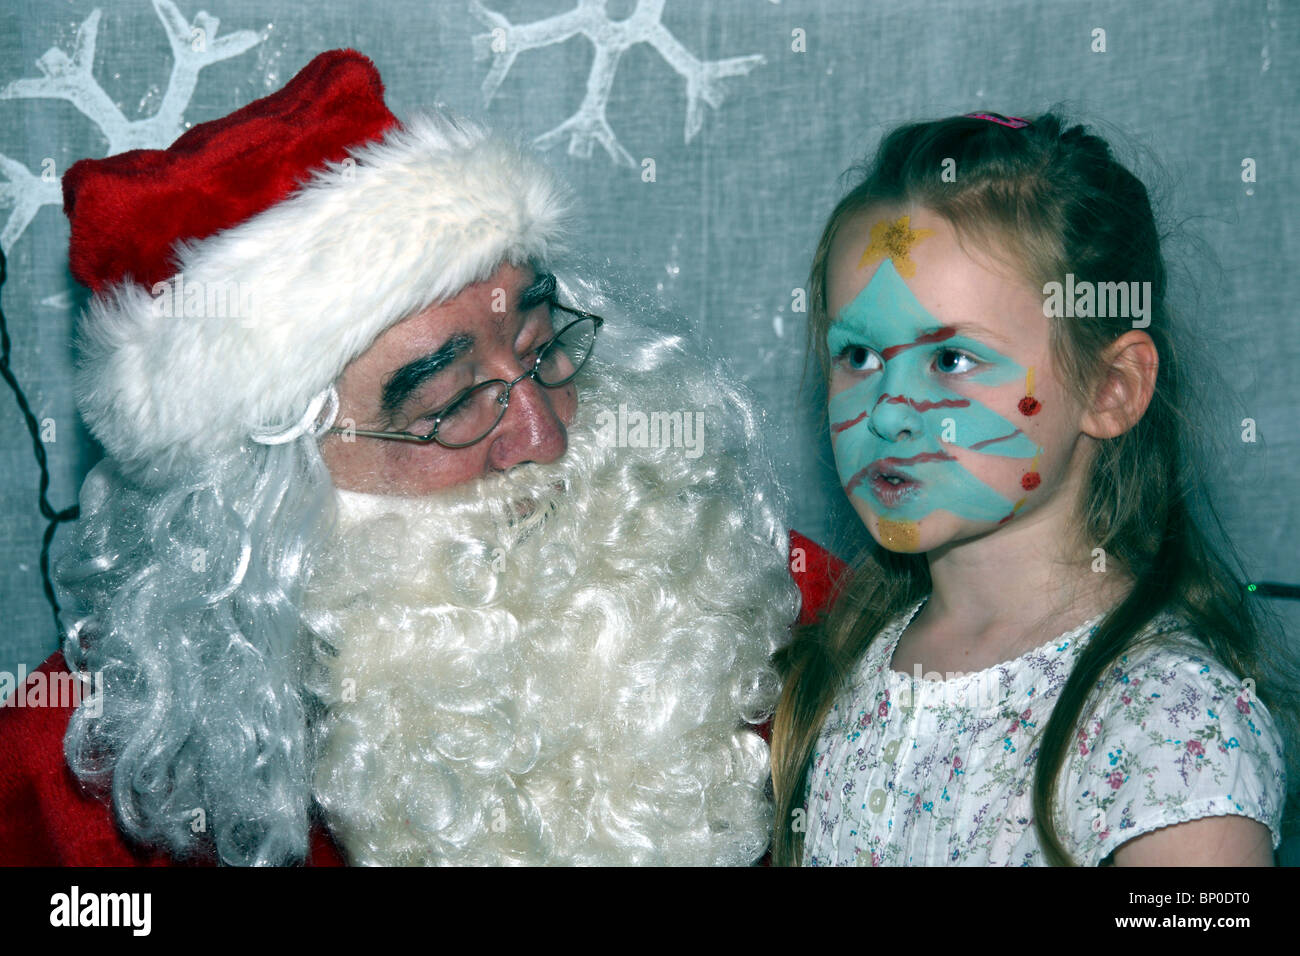 Little Girl With Christmas Tree Face Painting Meeting Santa Claus In Stock Photo Alamy